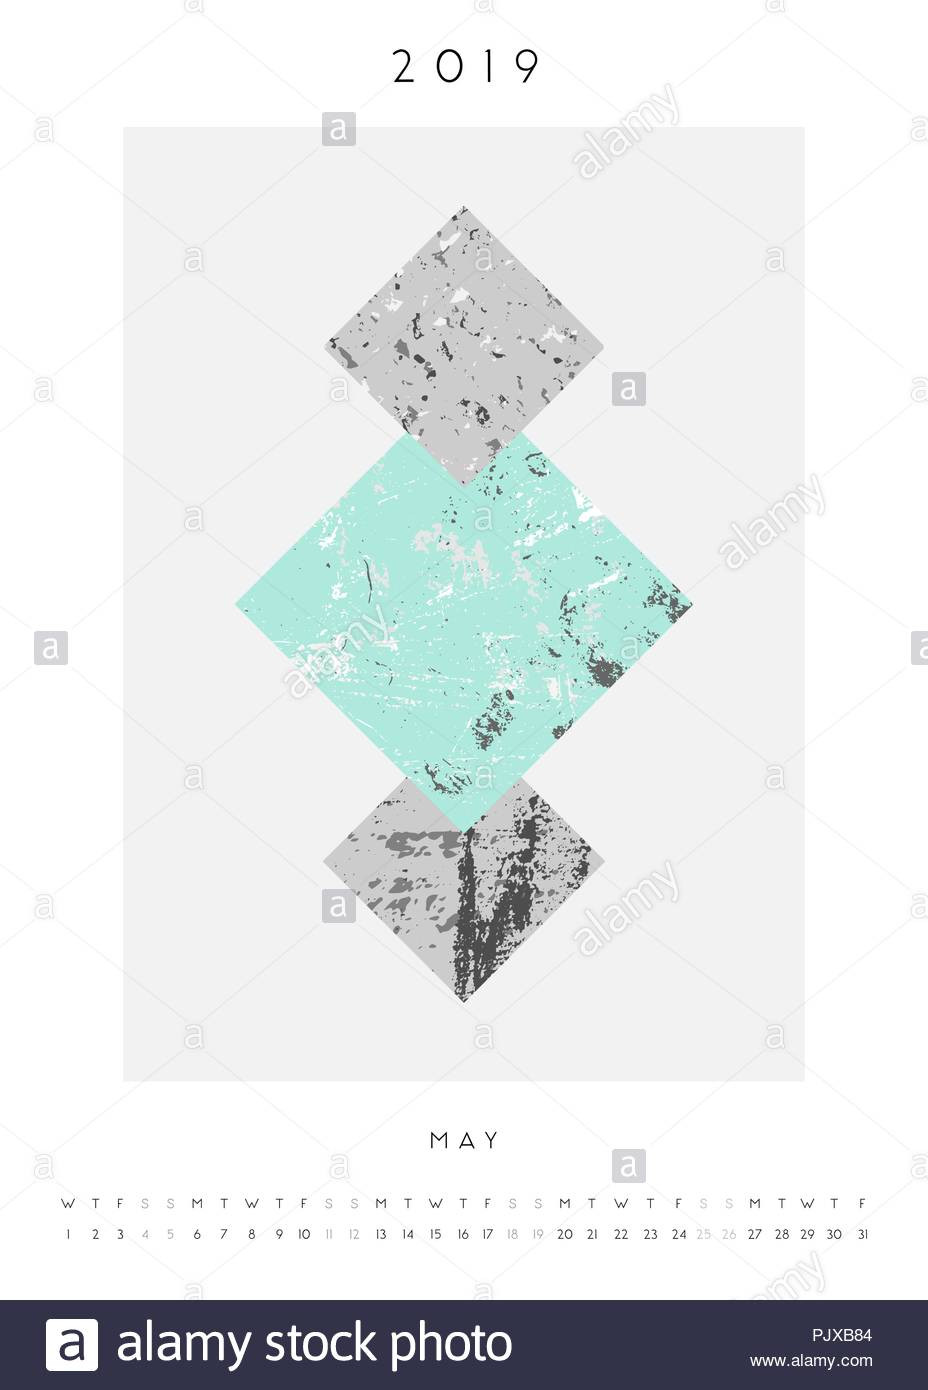 Geometry Template Printable Printable A4 Size May 2019 Calendar Template Abstract